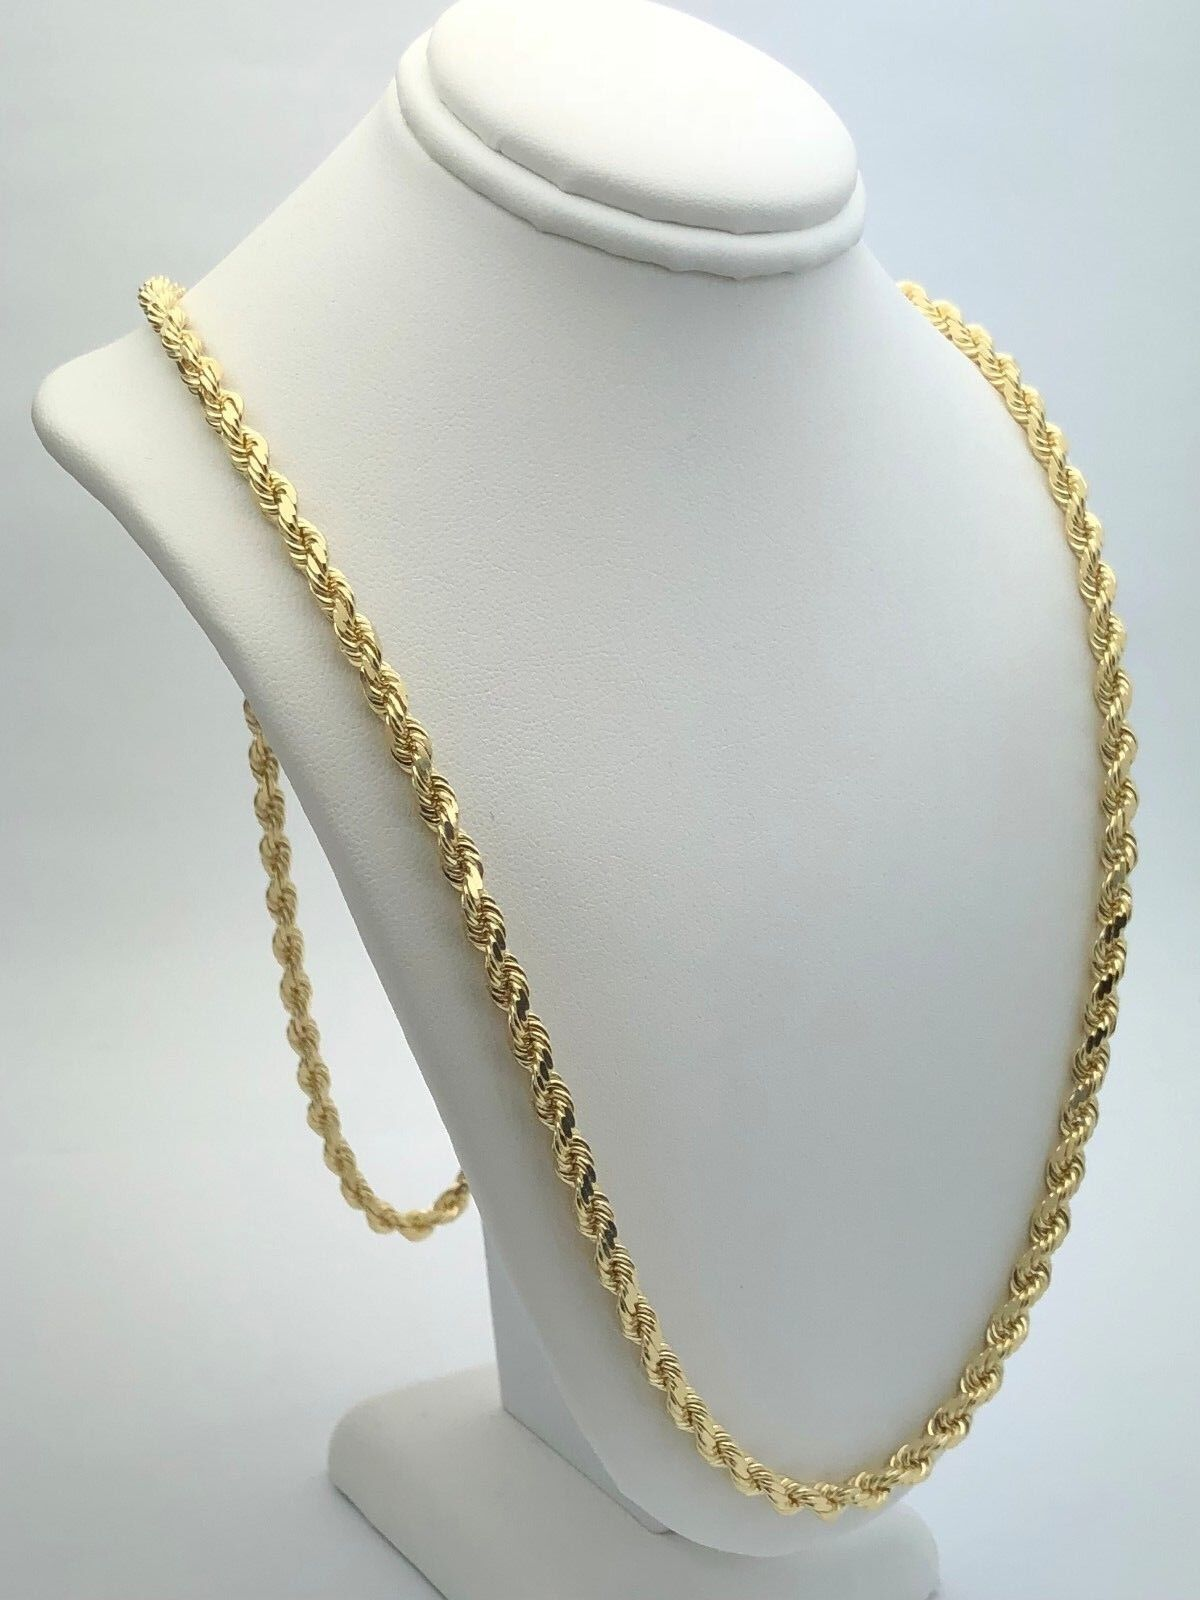 45f5be3820358 Details about 14k Yellow Gold Solid Diamond Cut Rope Chain Necklace 28